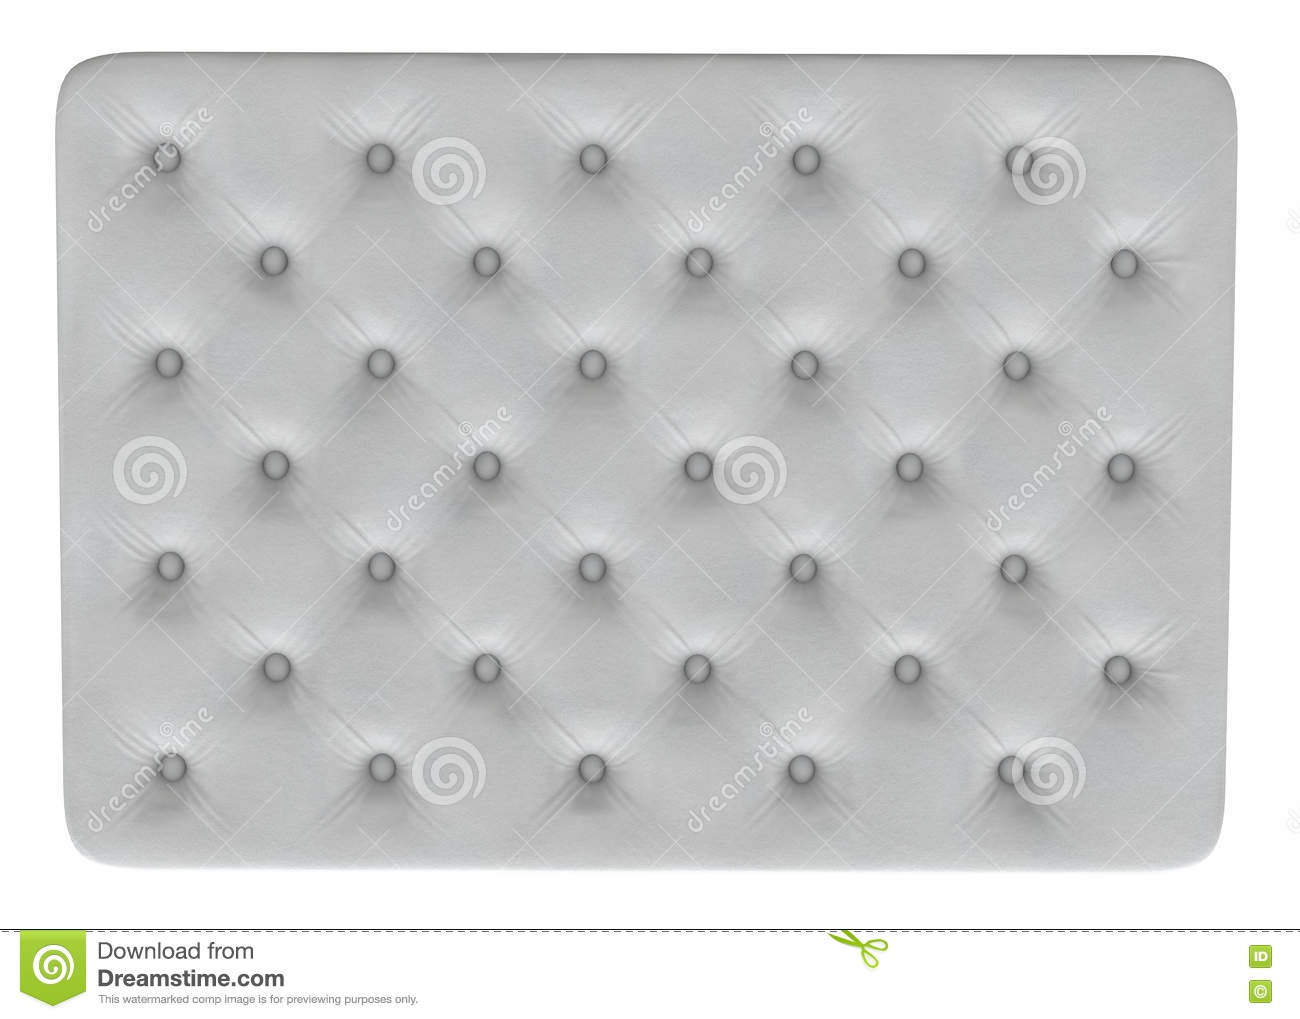 mattress texture. Mattress Texture Stock Illustrations \u2013 404 Illustrations, Vectors \u0026 Clipart - Dreamstime R